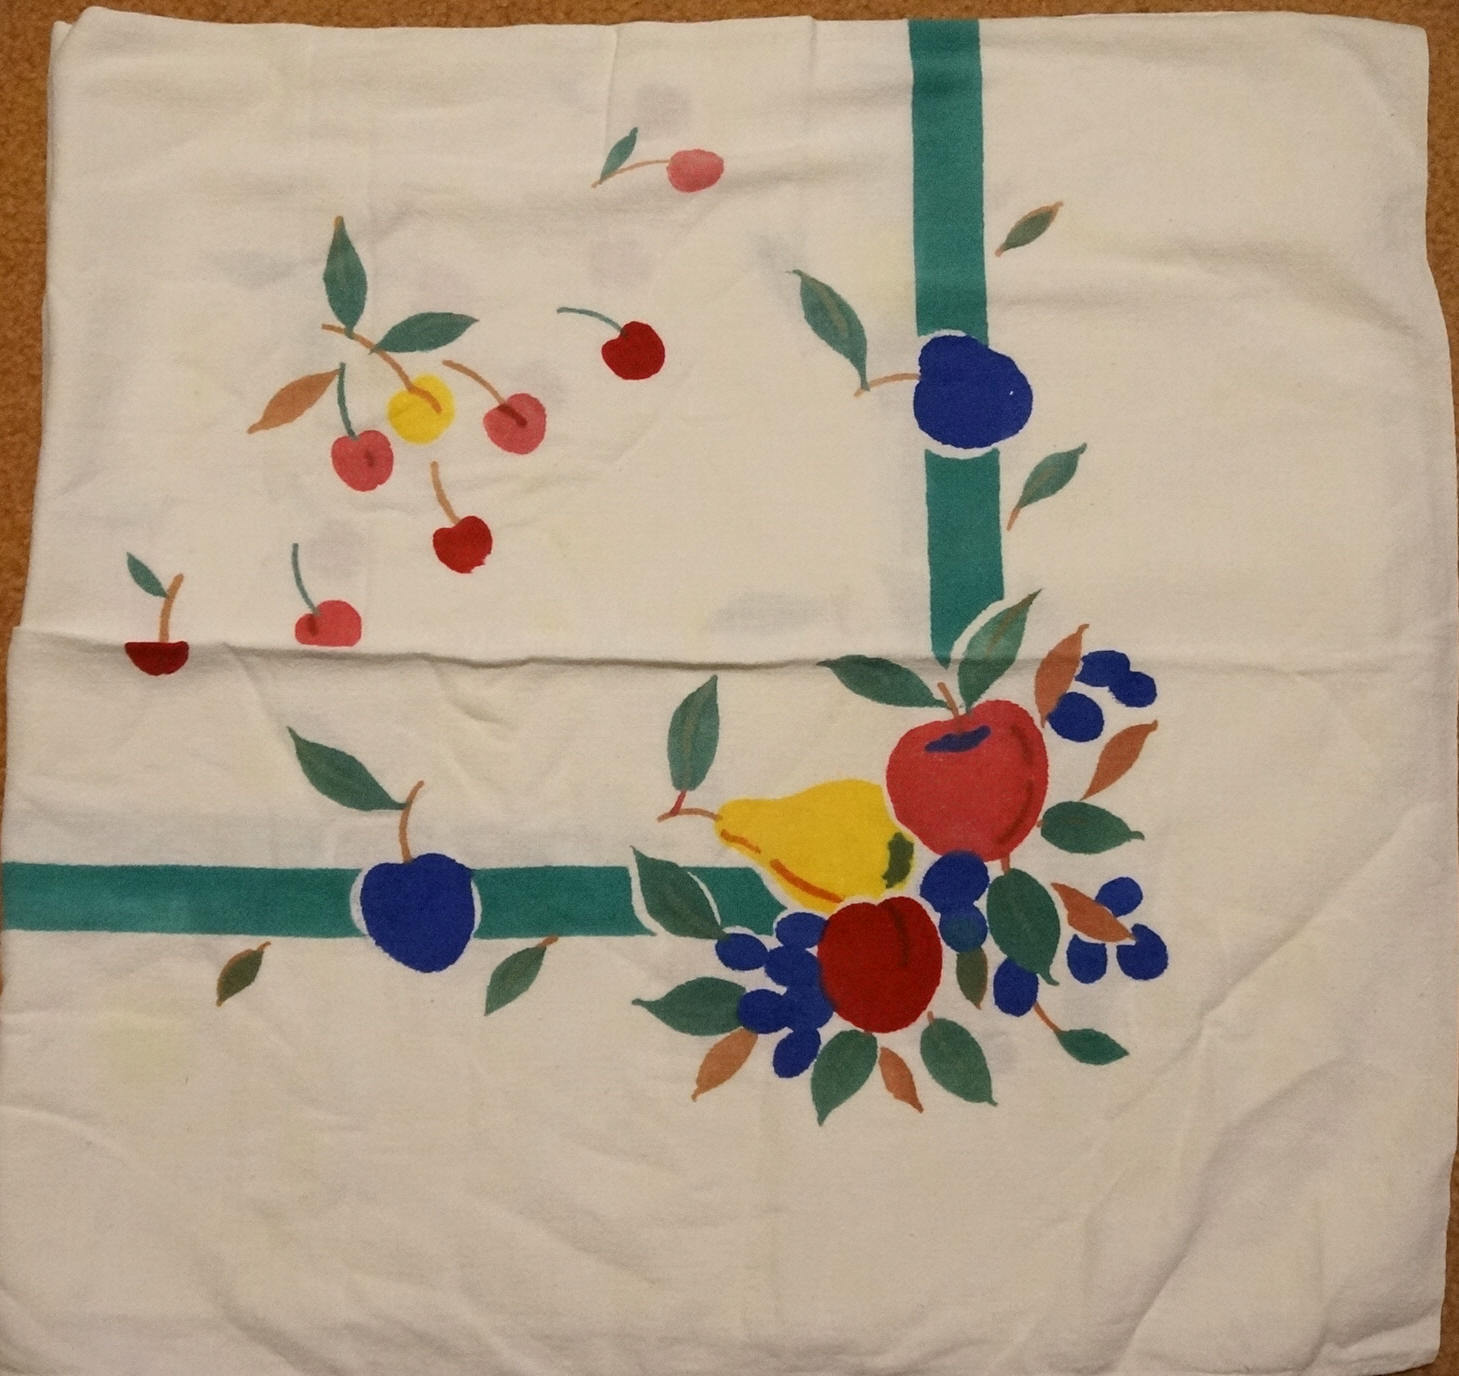 Colorful Vintage 50s Cotton Cherries Fruit Tablecloth Pears Apples Grapes Peach